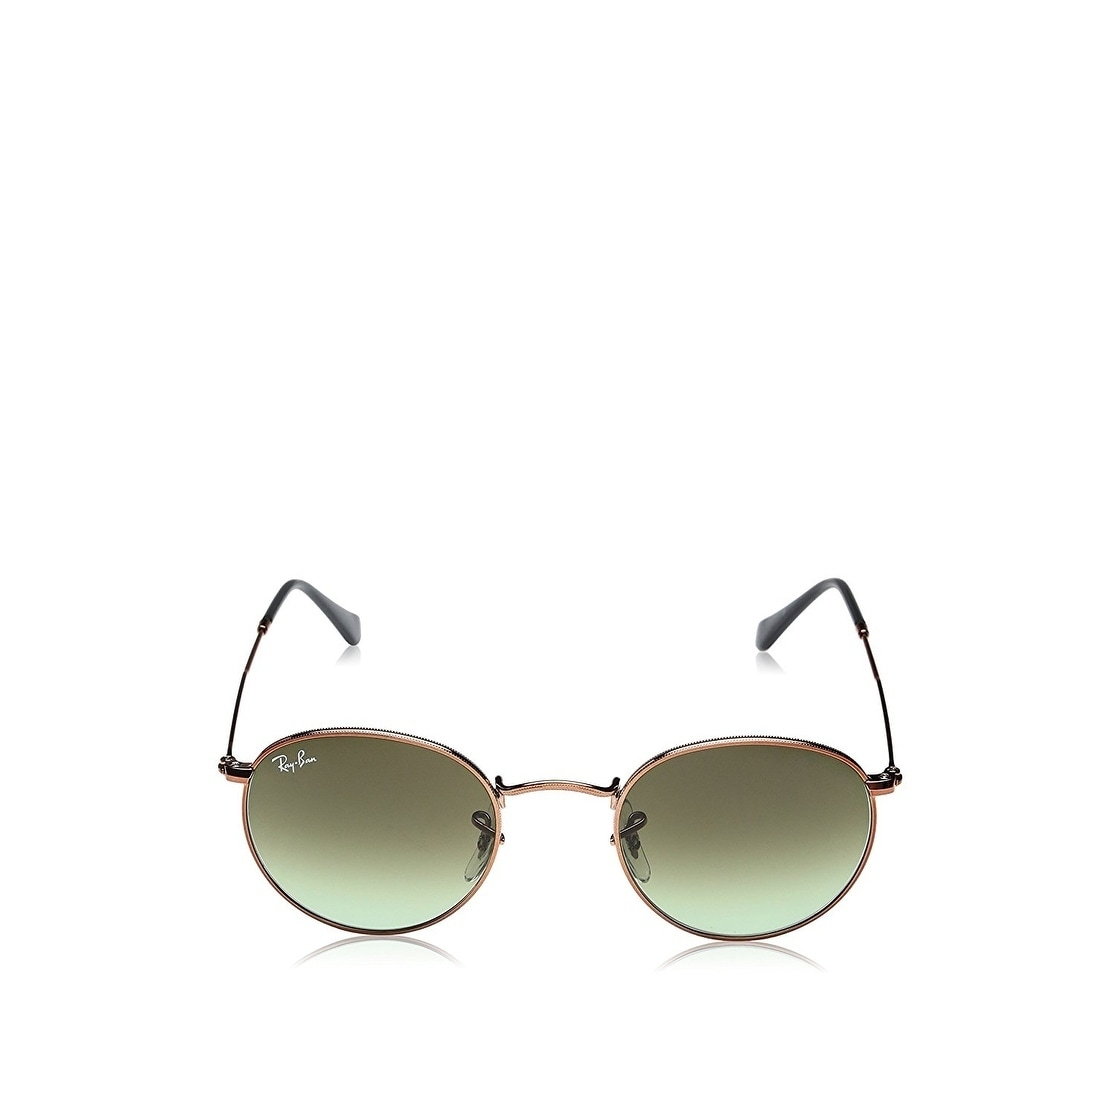 43756f3c5a1918 Shop Ray-Ban Unisex RB3447 Round Metal Bronze-Copper Frame Green Gradient  47mm Lens Sunglasses - Free Shipping Today - Overstock.com - 17754381